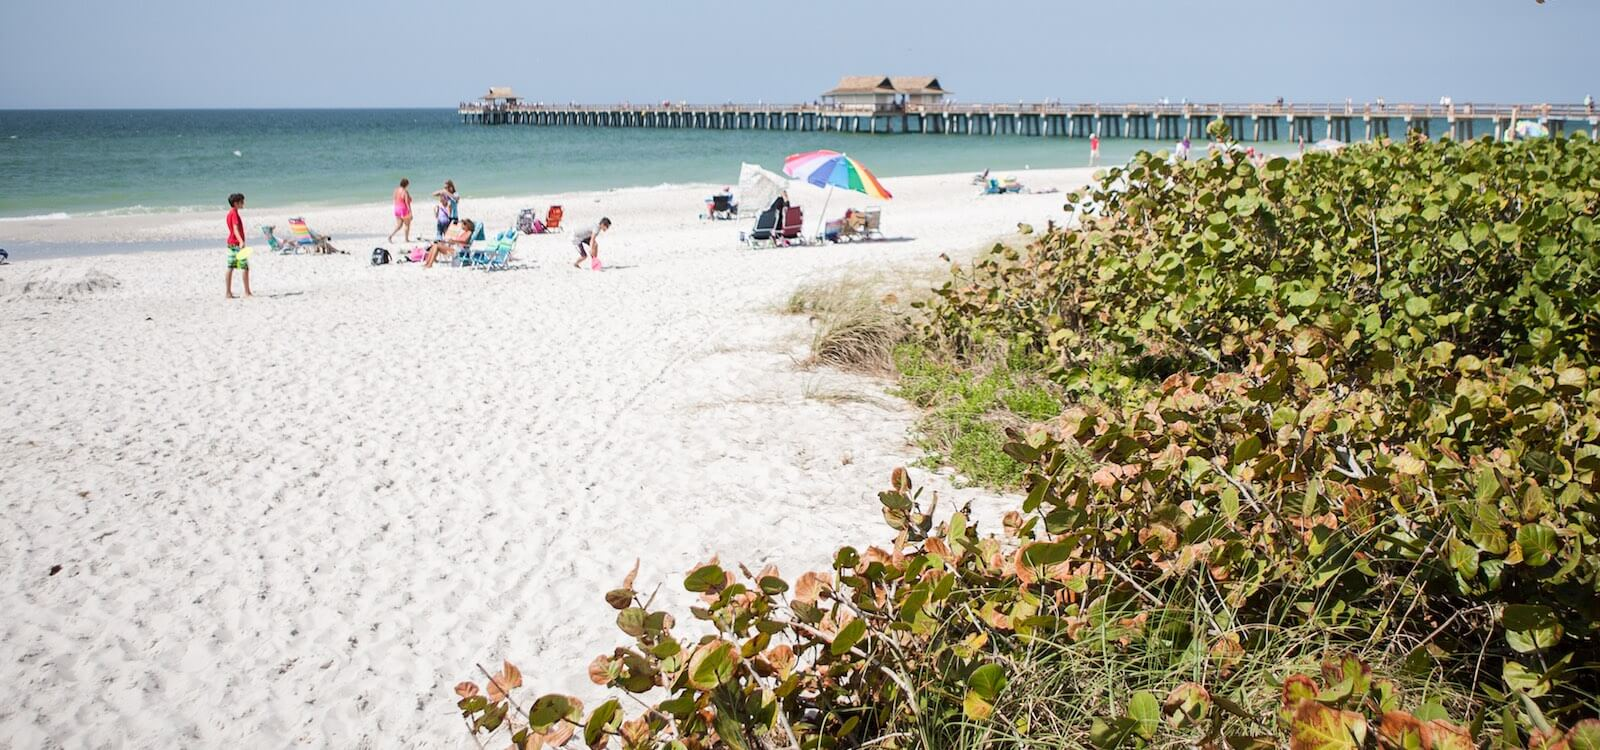 MustDo.com | White sand beach and the Naples Beach Pier Naples, Florida. Photo by Mary Carol Fitzgerald.